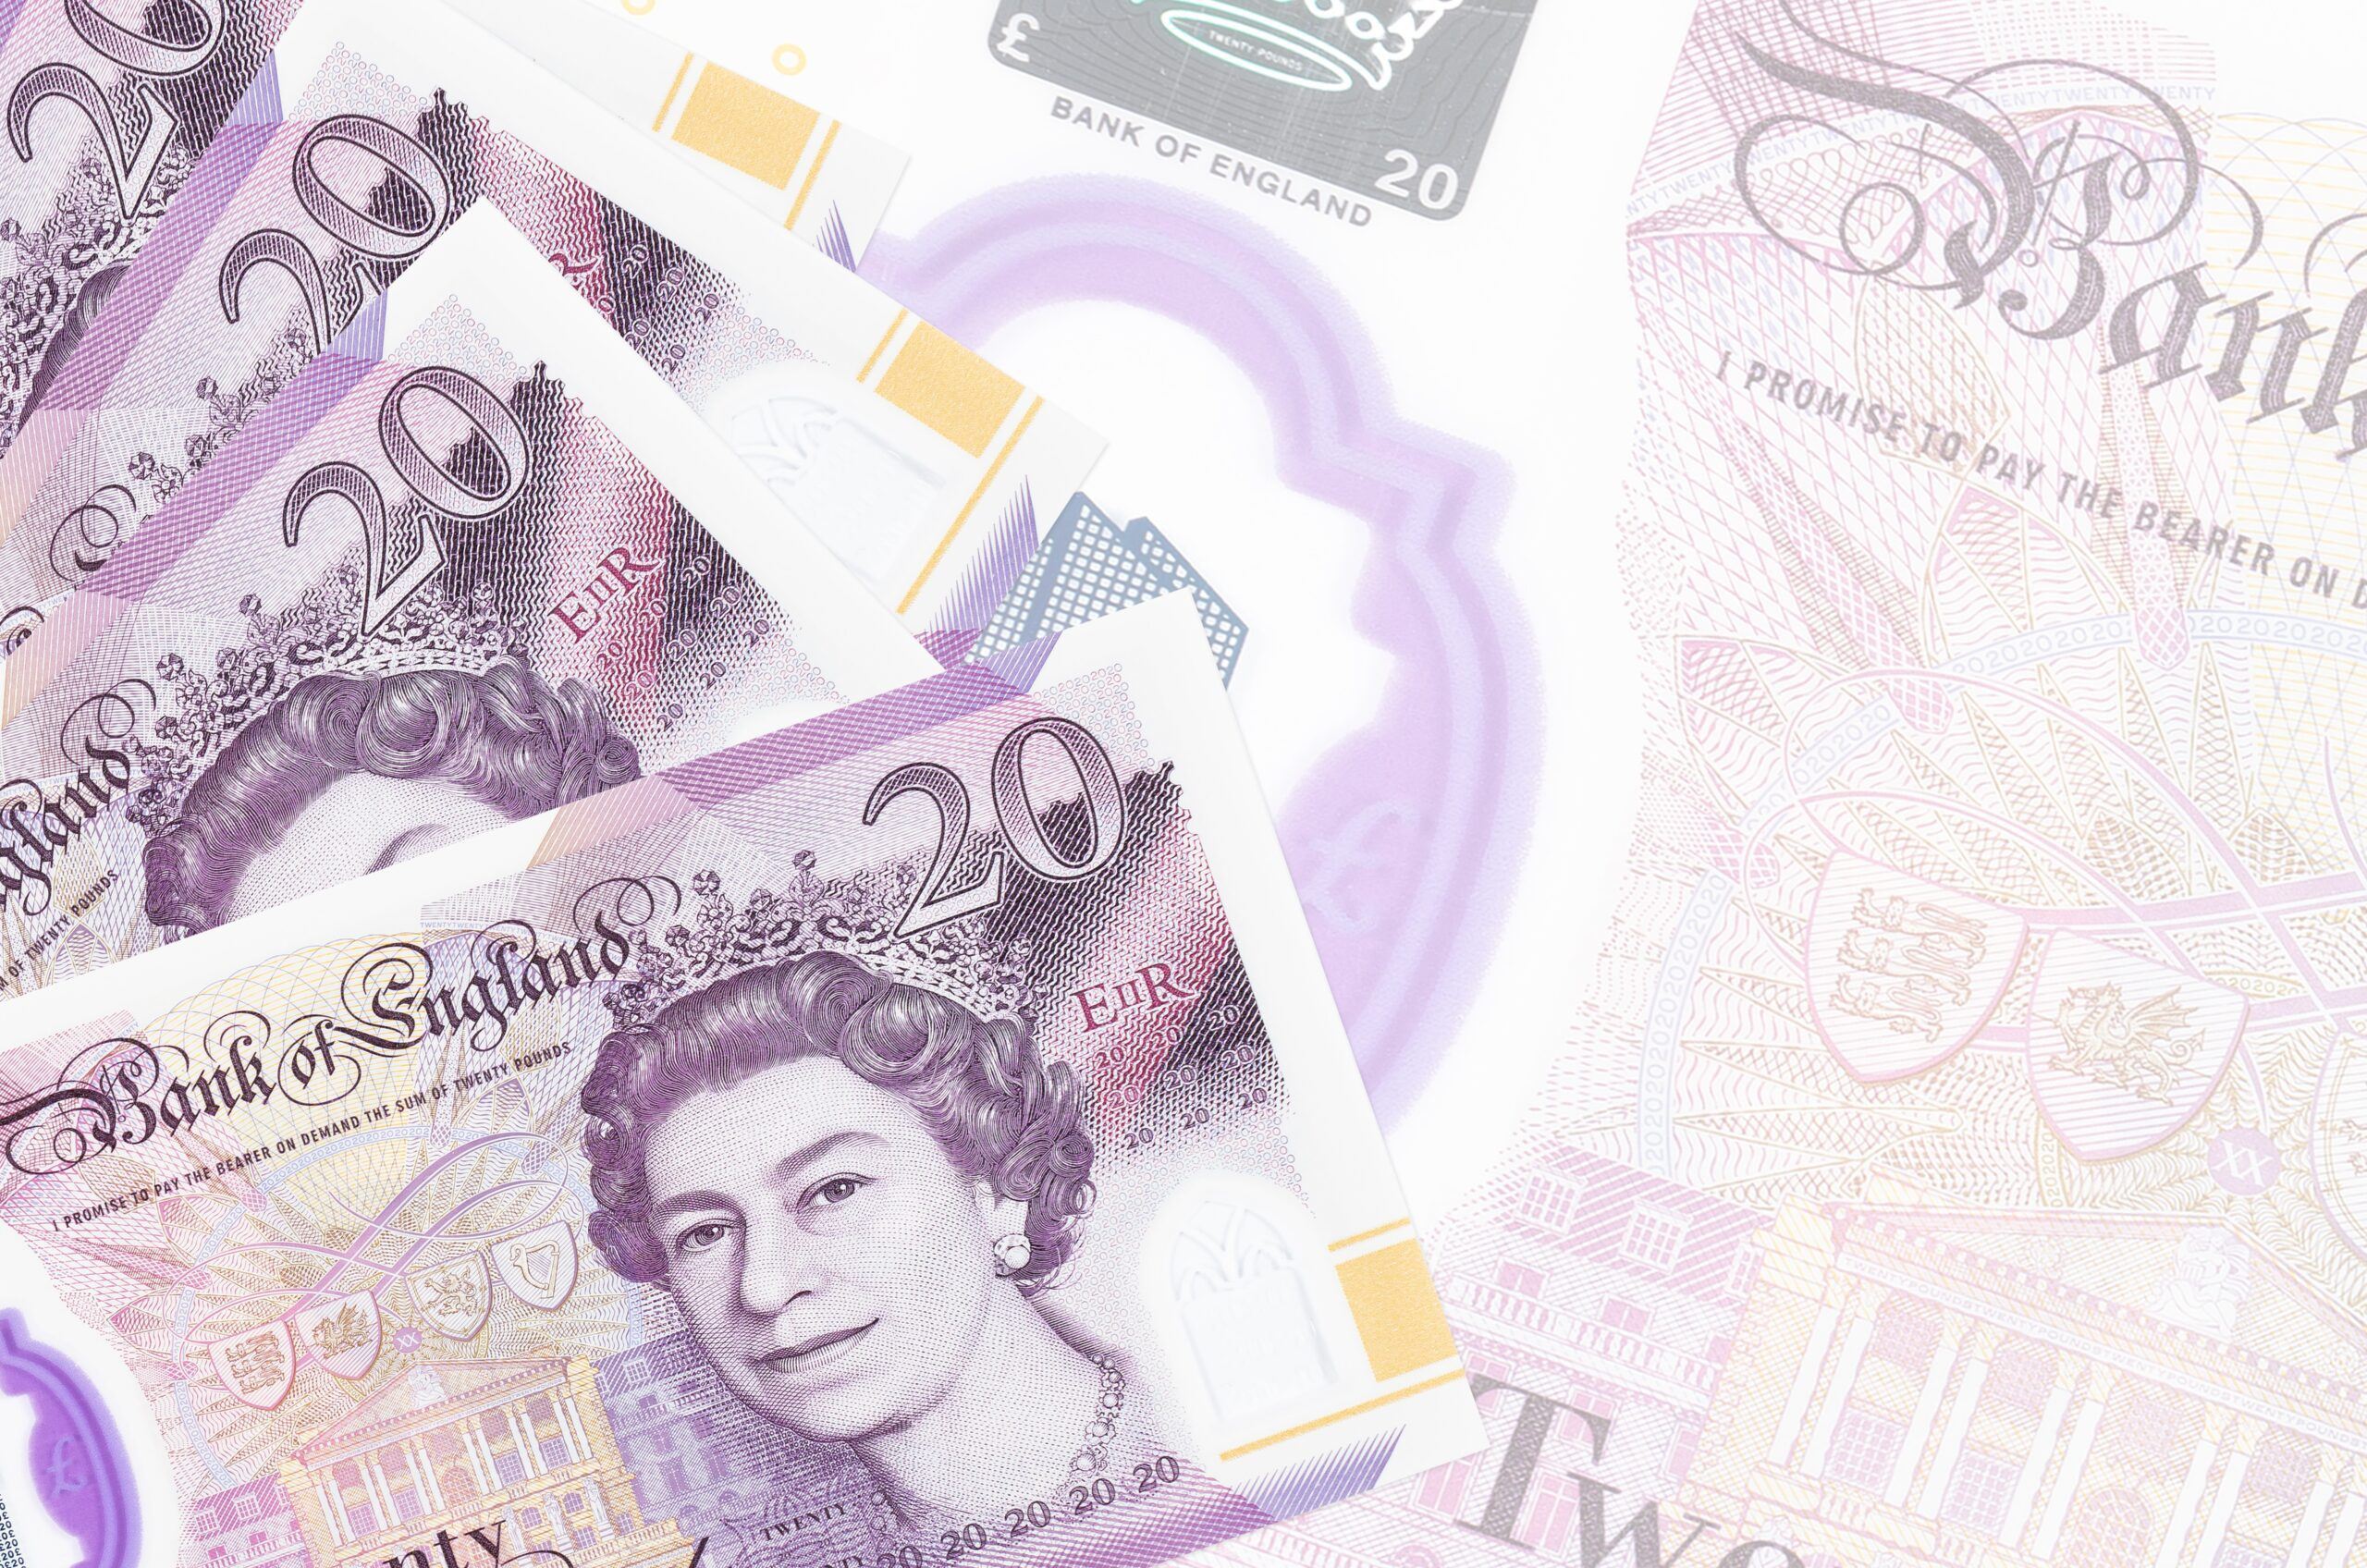 LOCAL AUTHORITIES PAY 1.3 MILLION SUPPLIER INVOICES (OVER £5BN) LATE EVERY YEAR